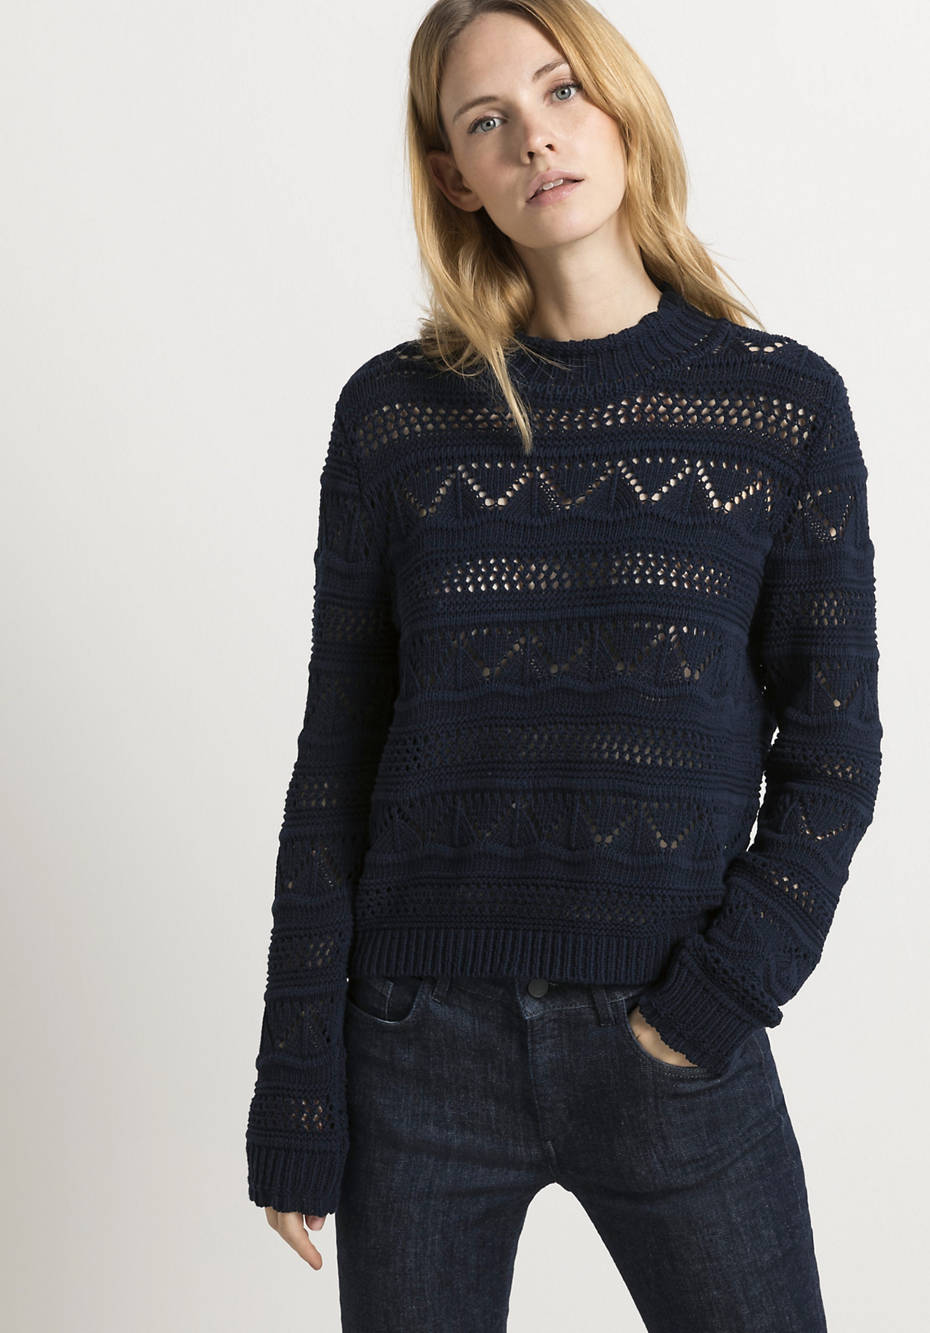 Ajour sweater made from pure organic cotton